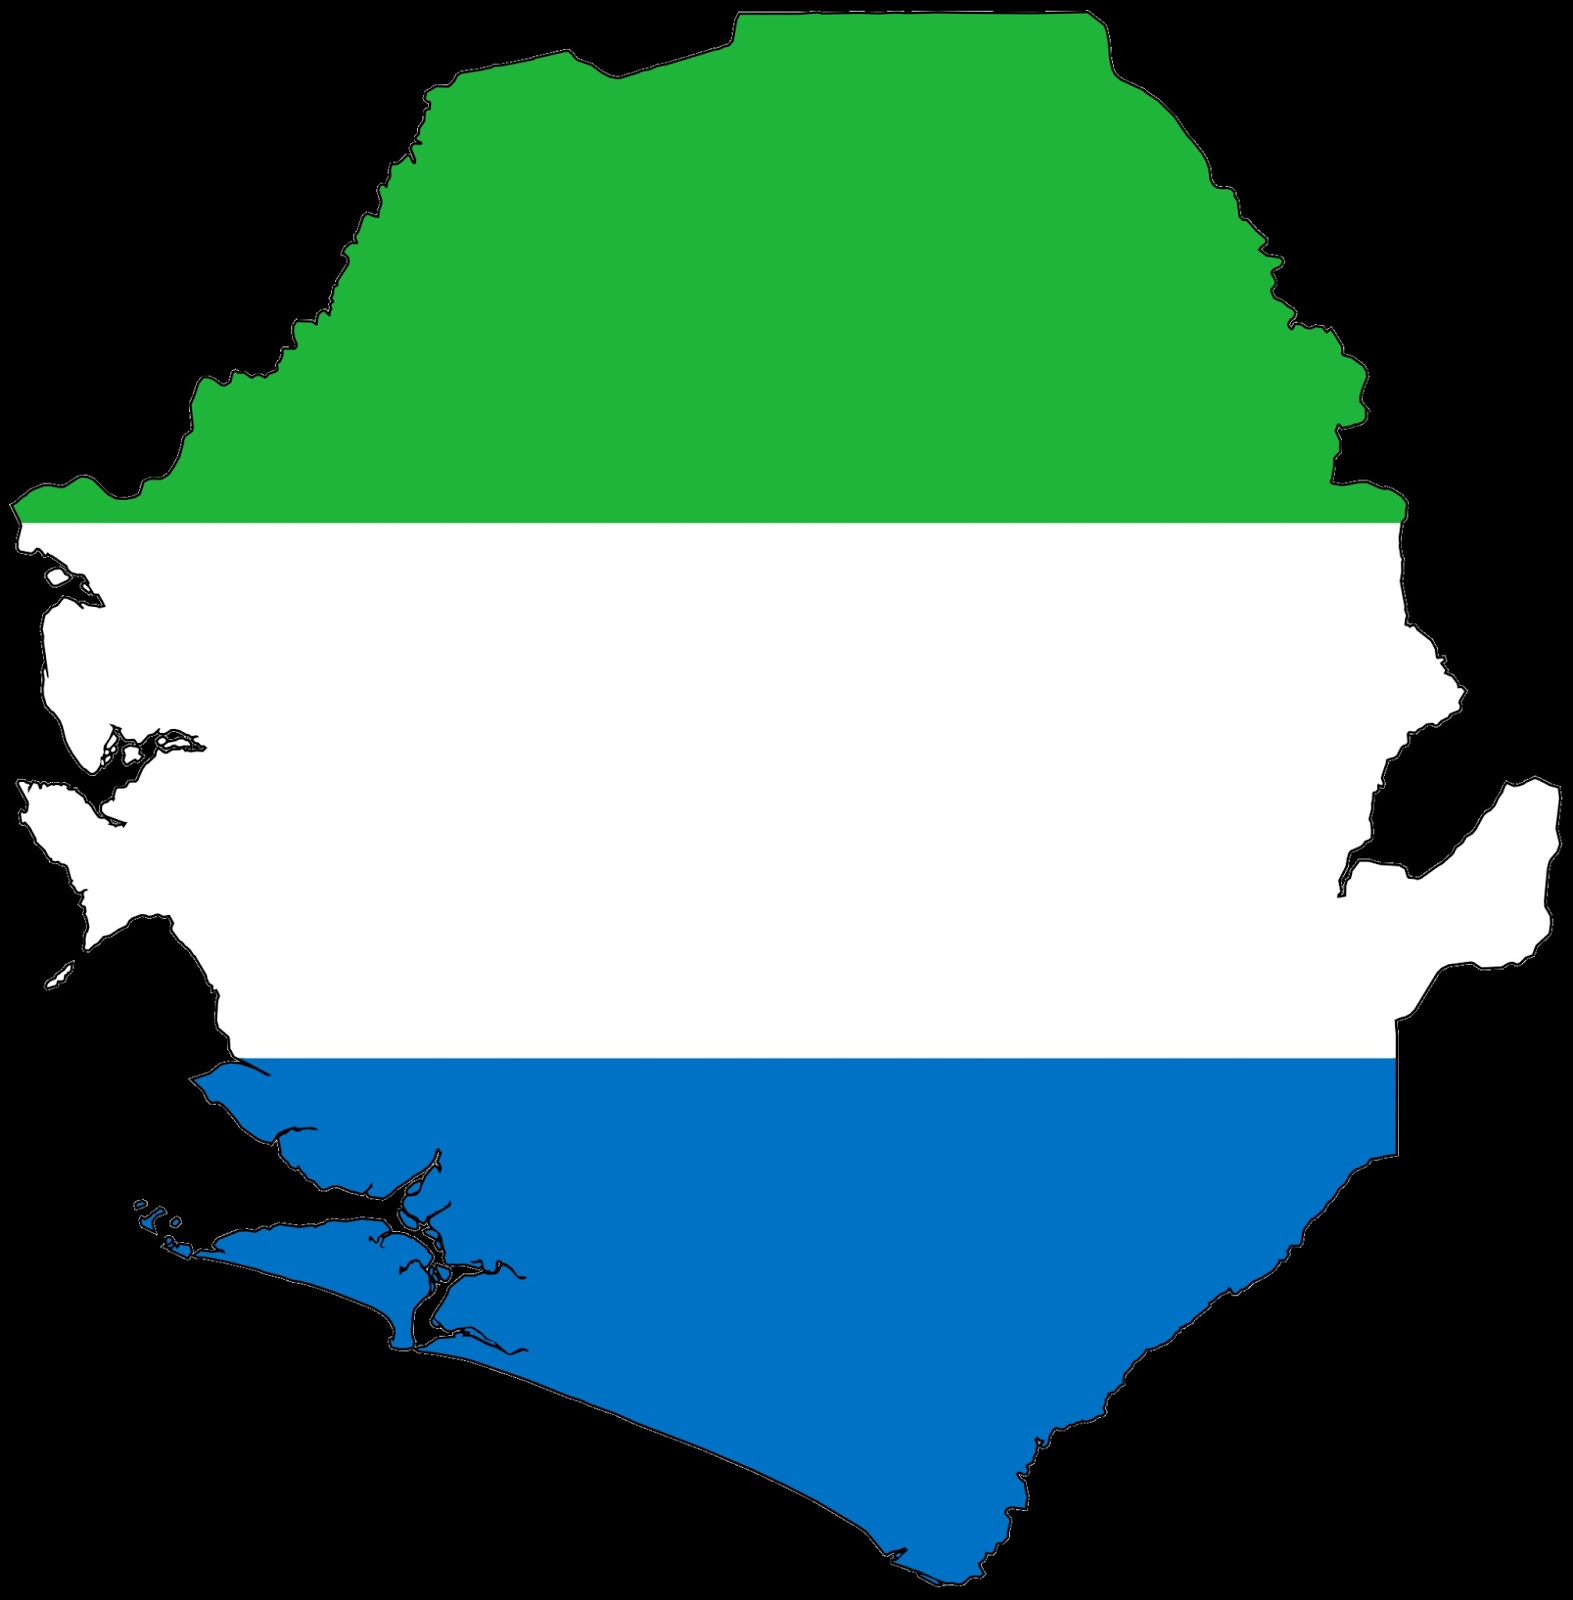 map of sierra leone colored with the nation s flag colors and alignment